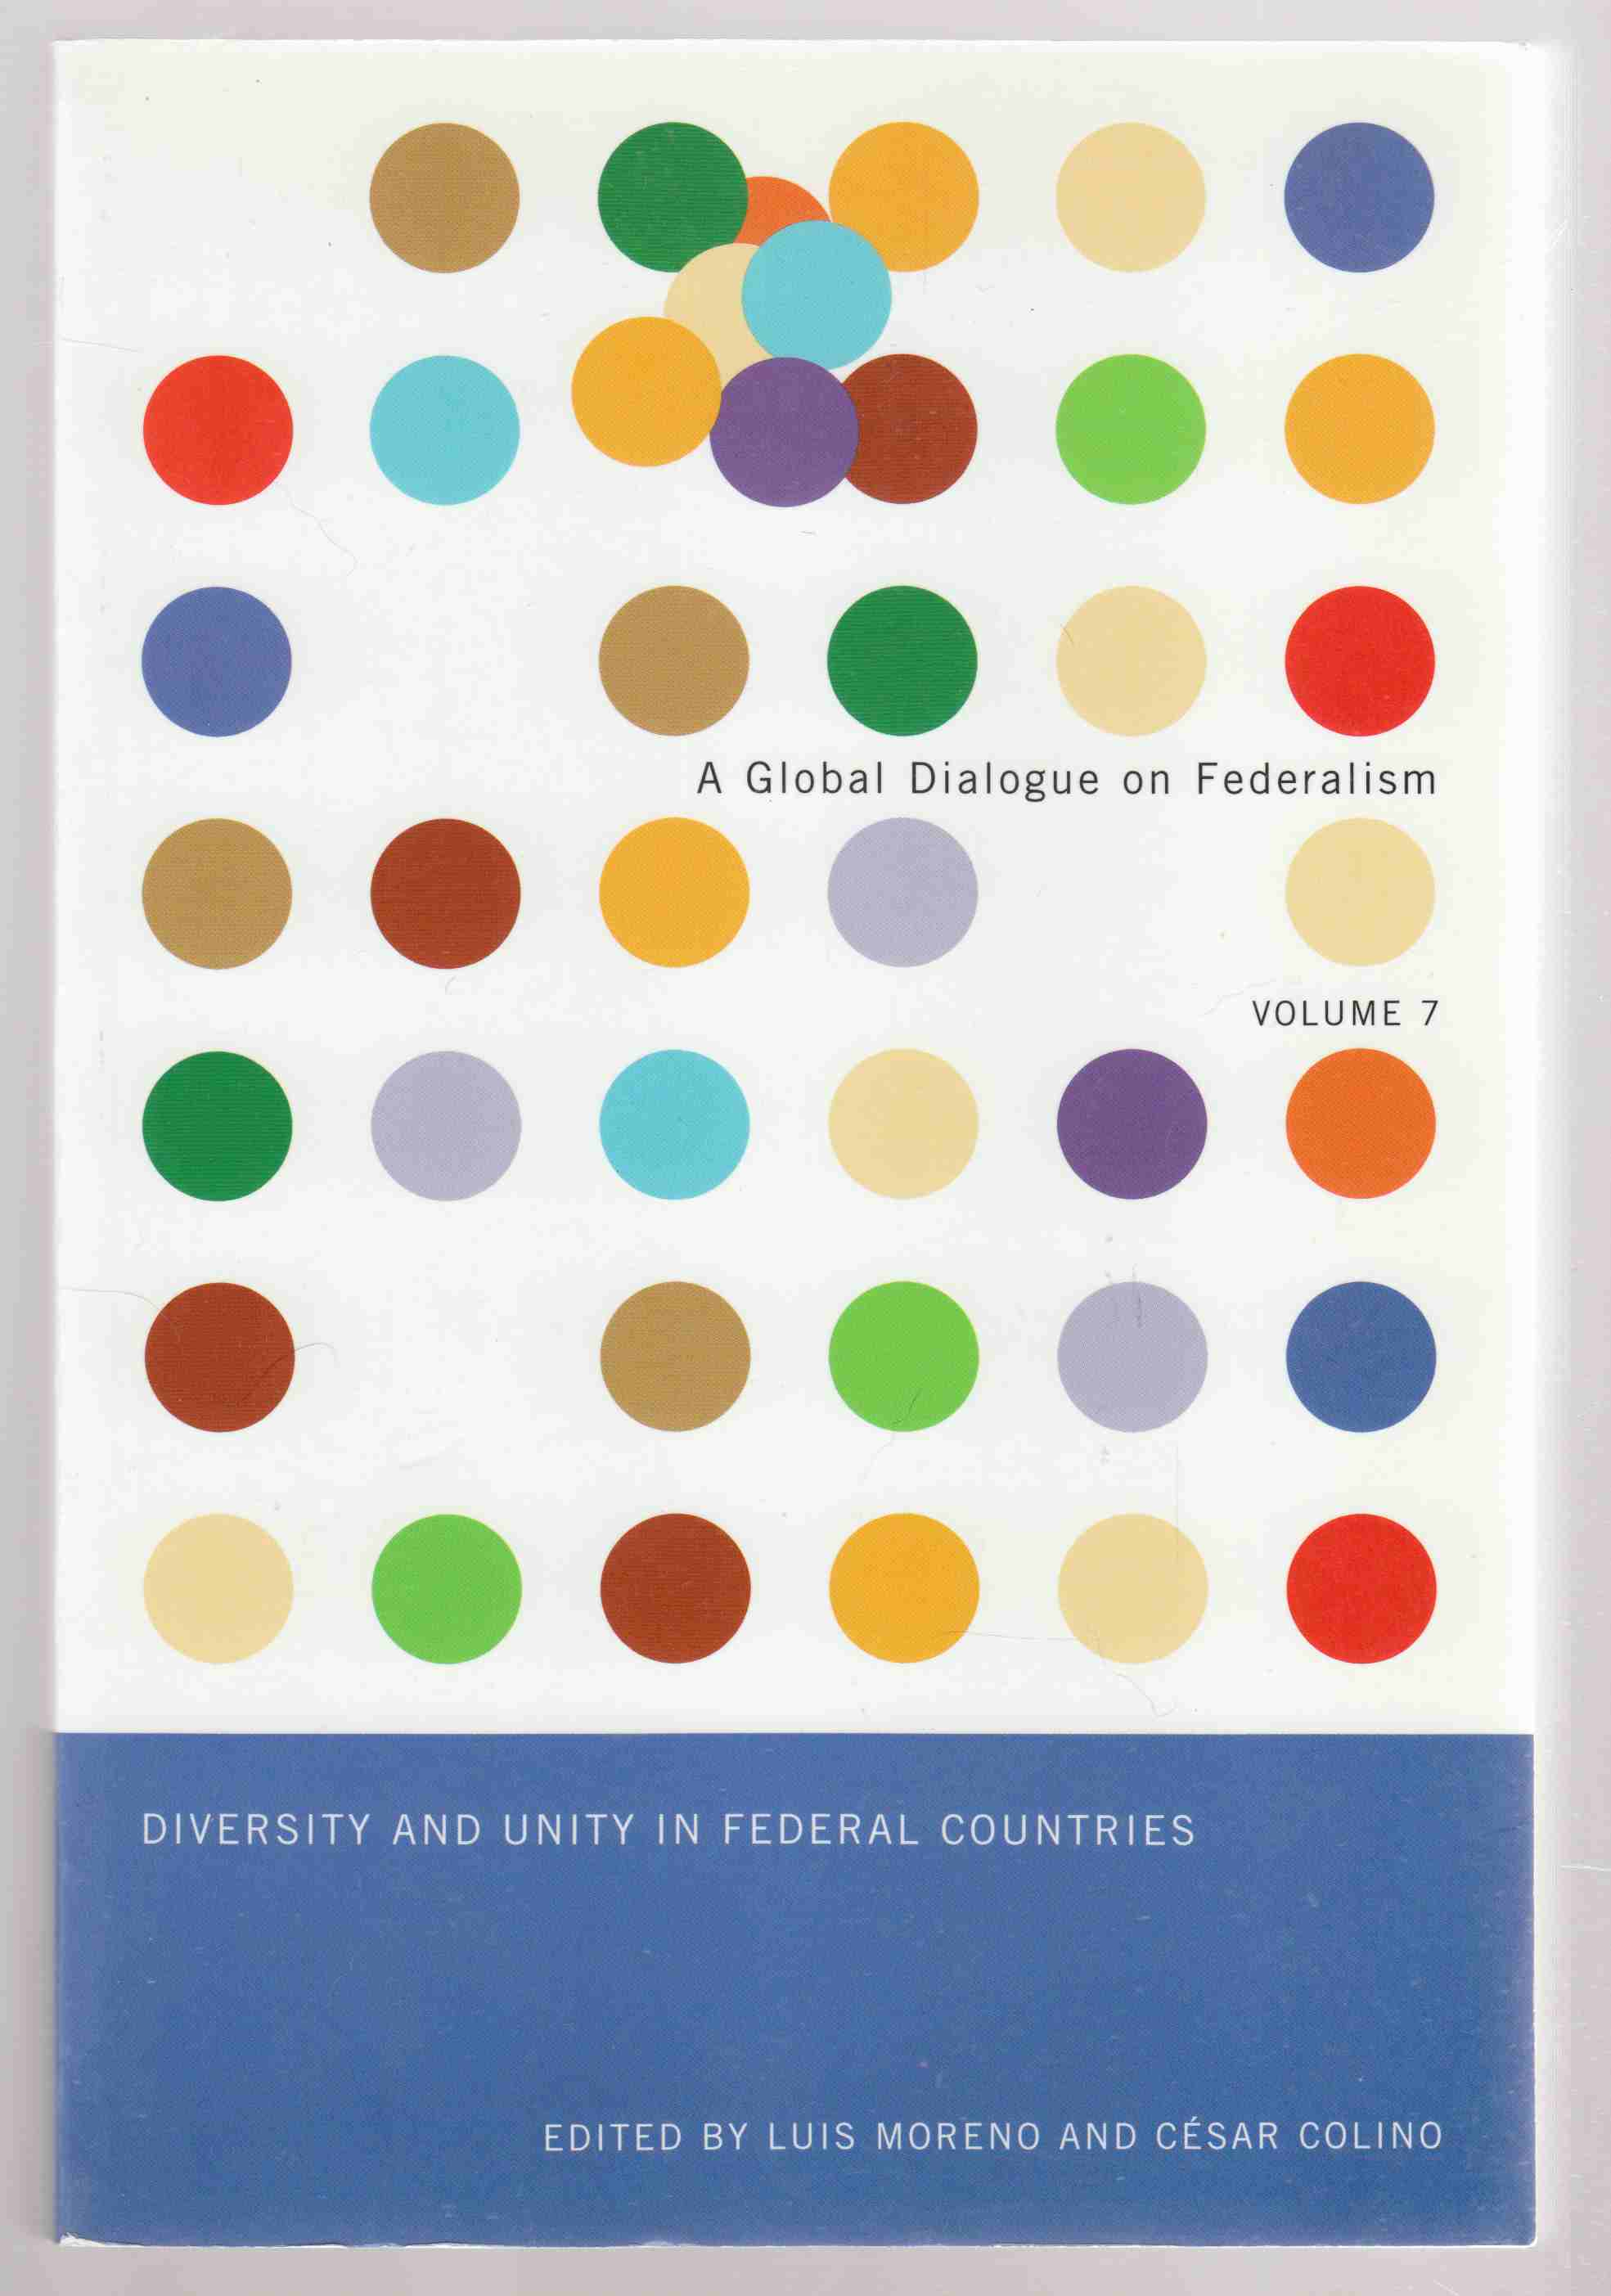 Image for Diversity and Unity in Federal Countries A Global Dialogue on Federalism Volume 7